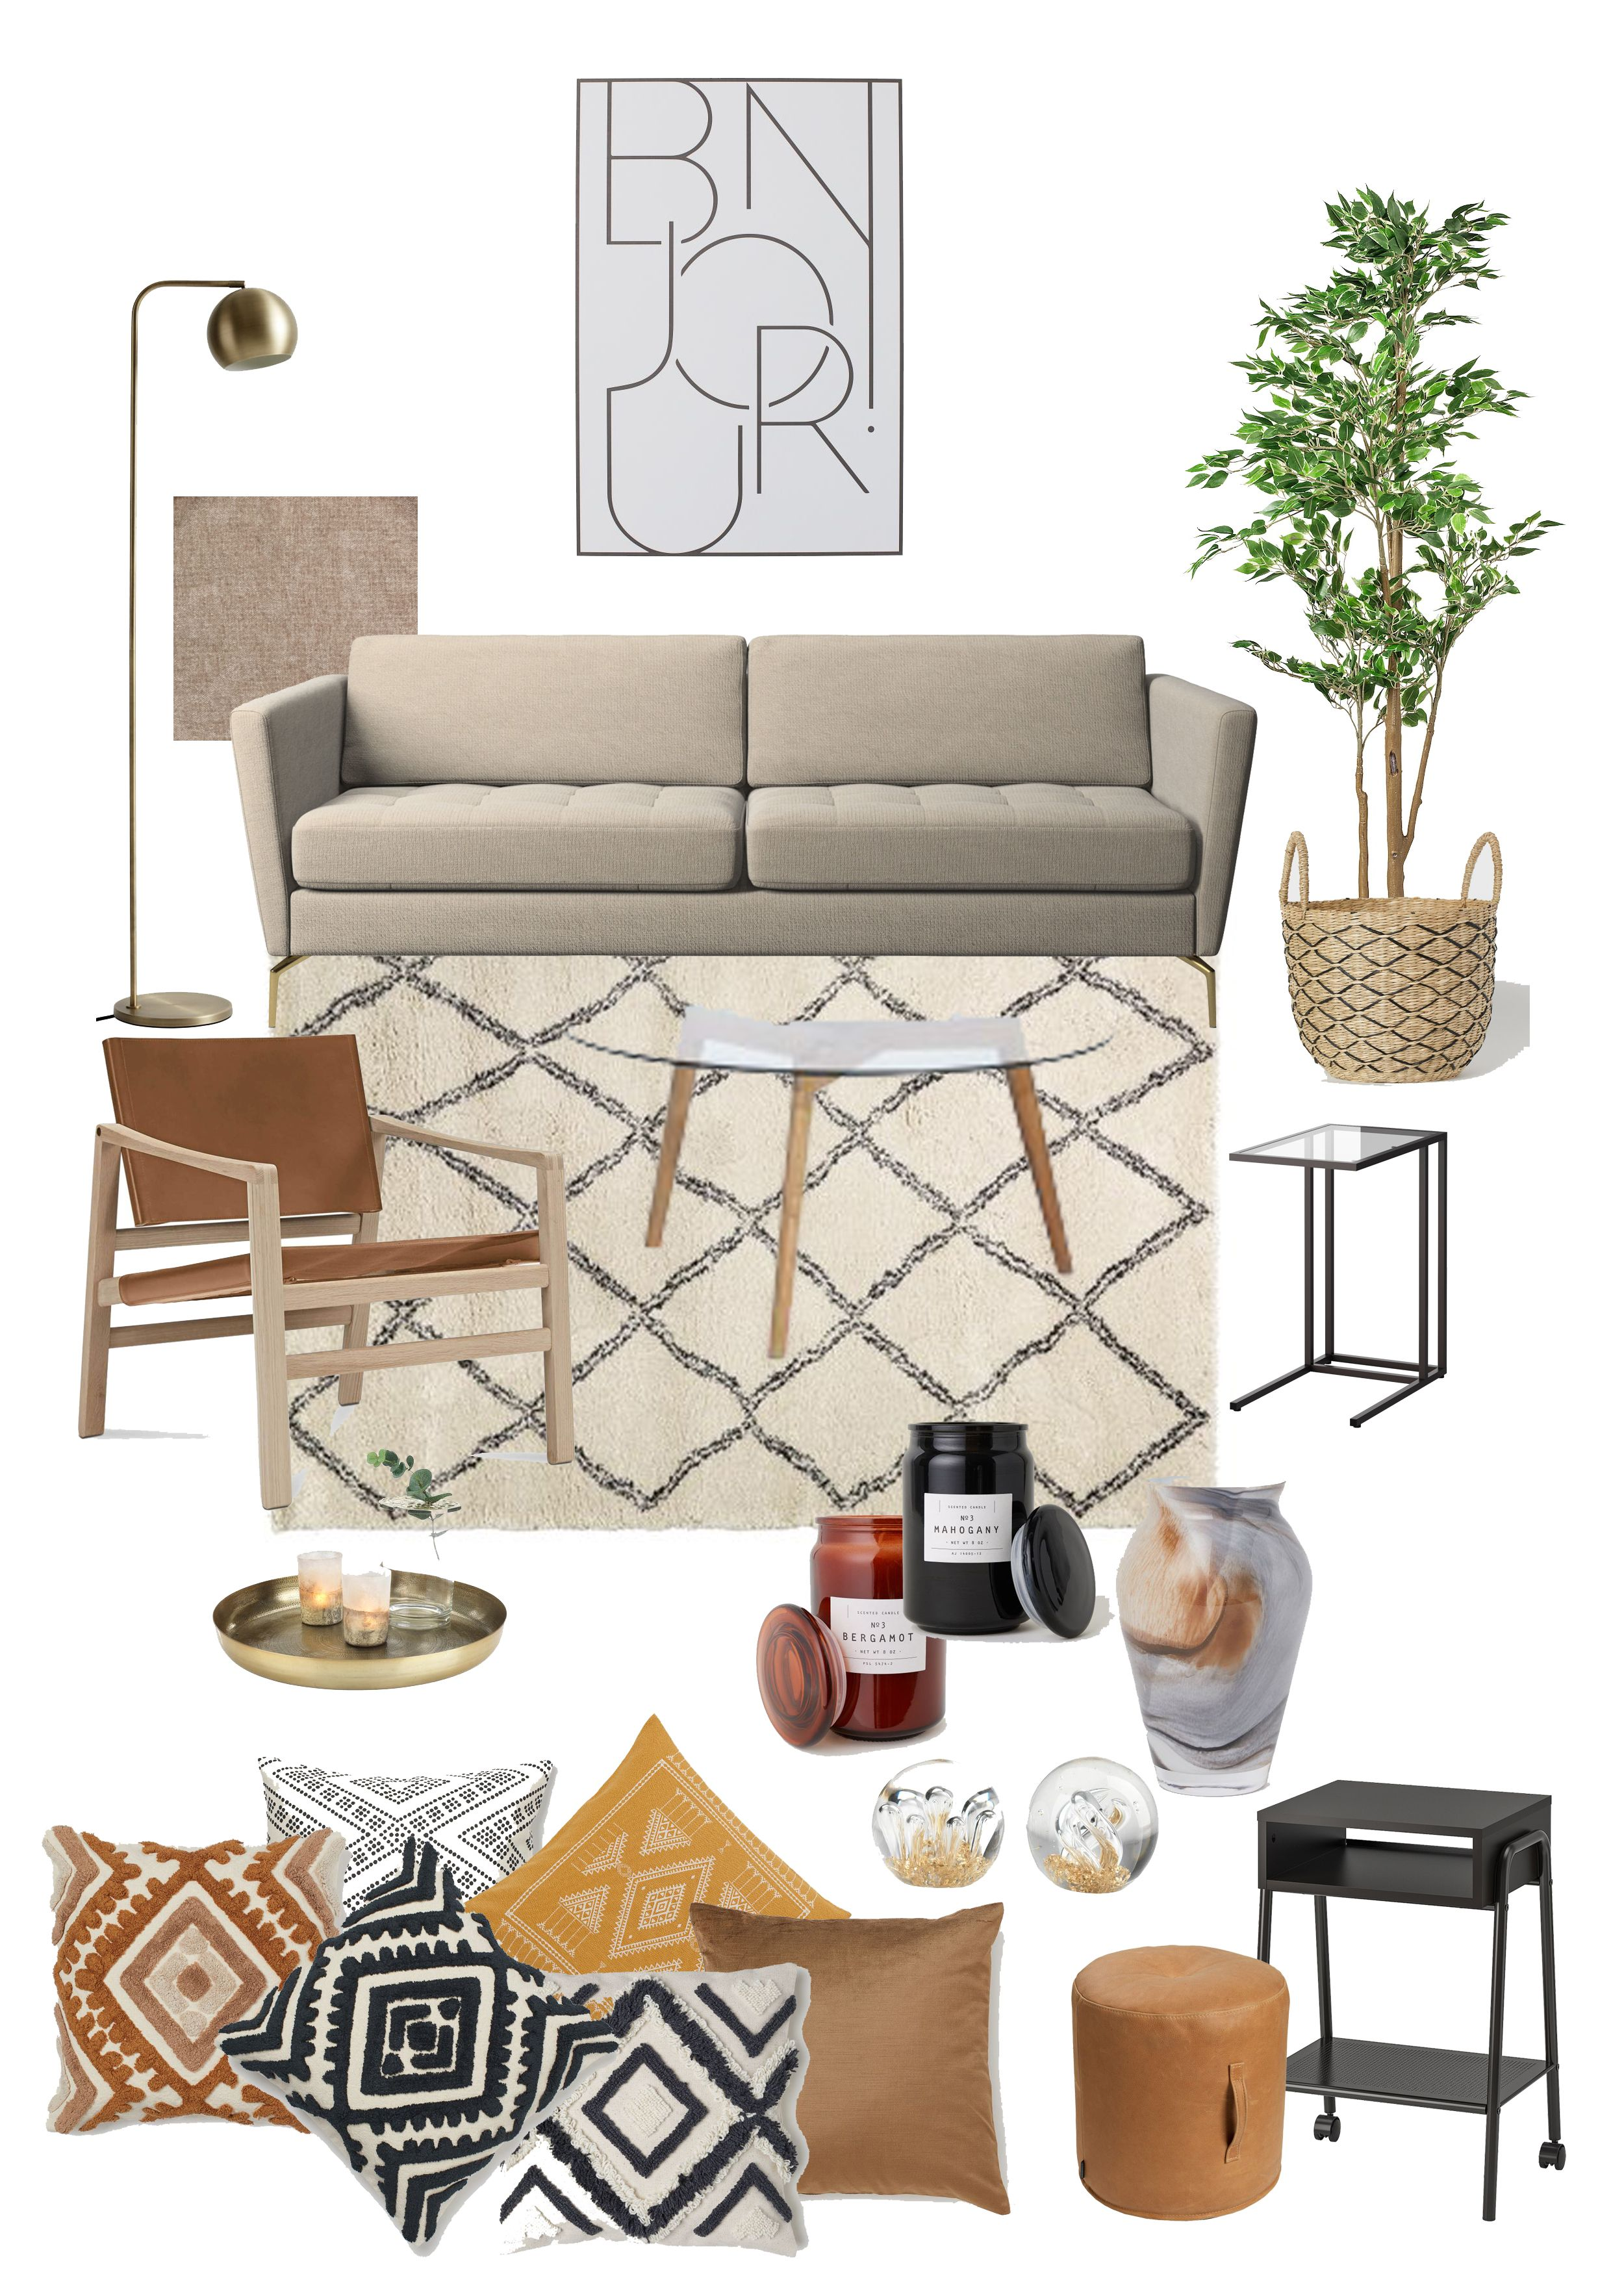 This is a moodboard for a small living room in neutral natural tones. Easy to make a place cosy and inviting with these items without breaking a bank. These items are from #boconcept #ikea #homehome #jysk very Scandinavian indeed :)